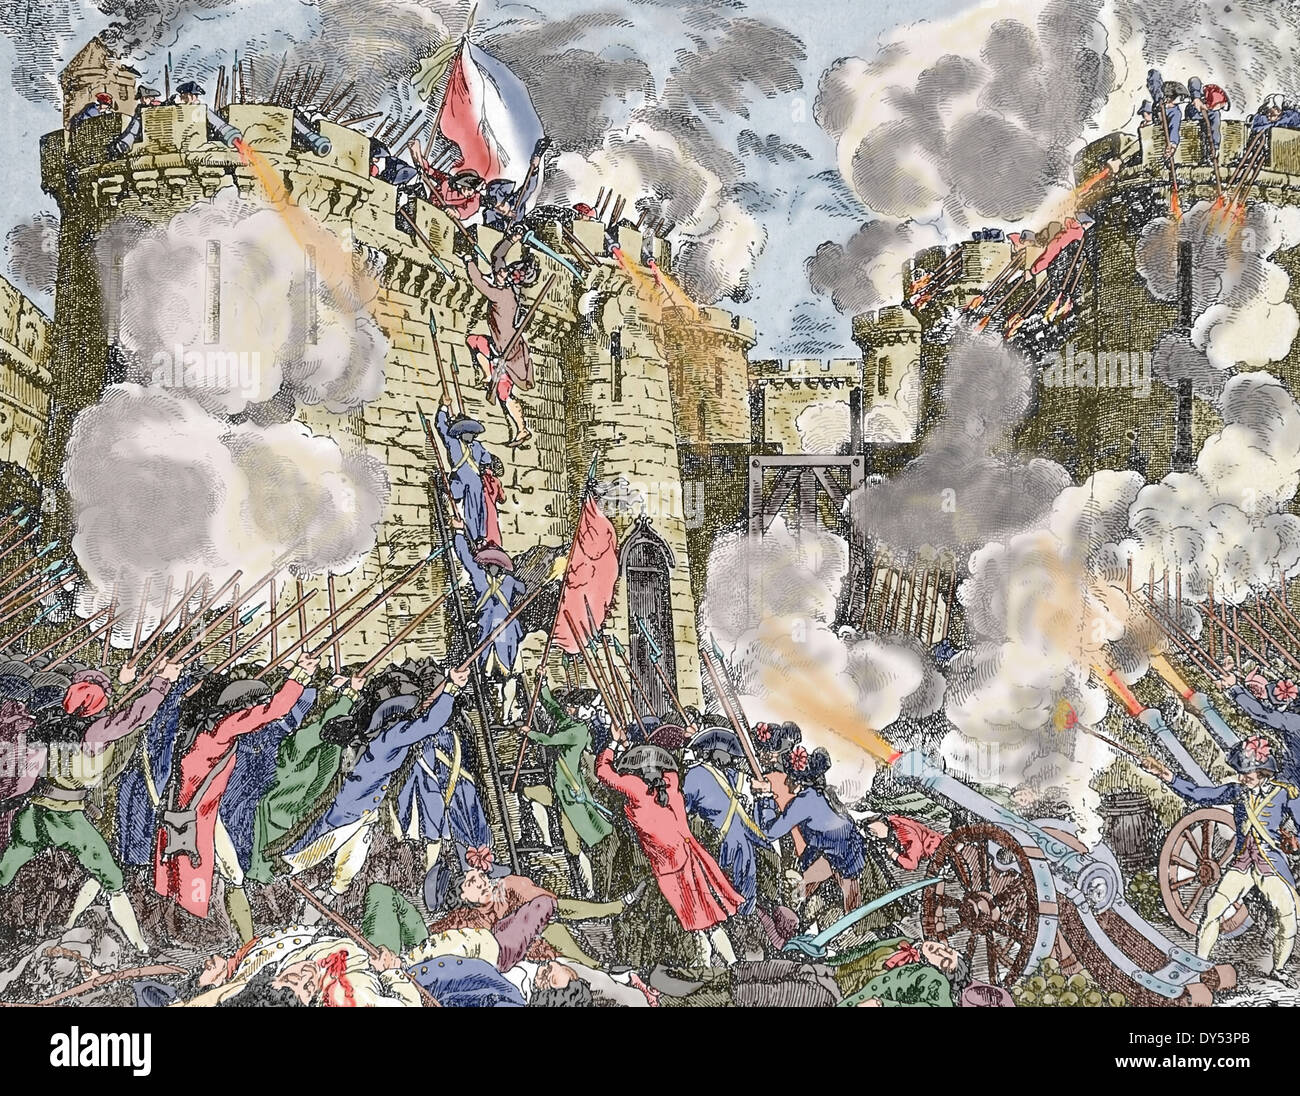 Storming Bastille Stock Photos & Storming Bastille Stock Images ...